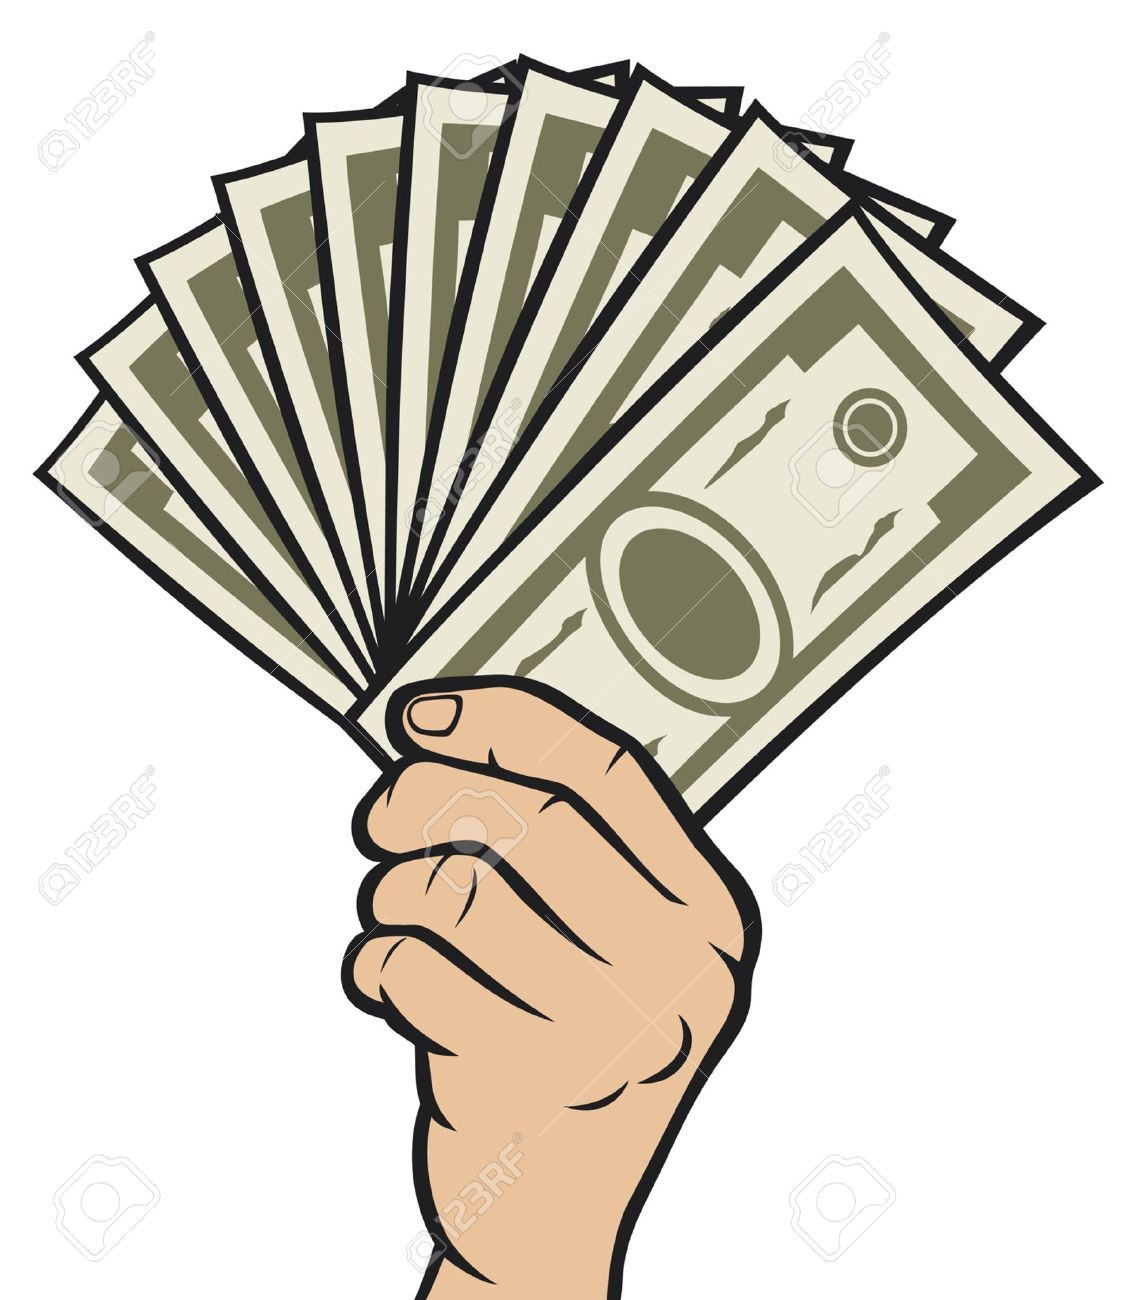 Money in the hand (Hand with money, Hand holding Banknotes ) Stock Vector - 14836291